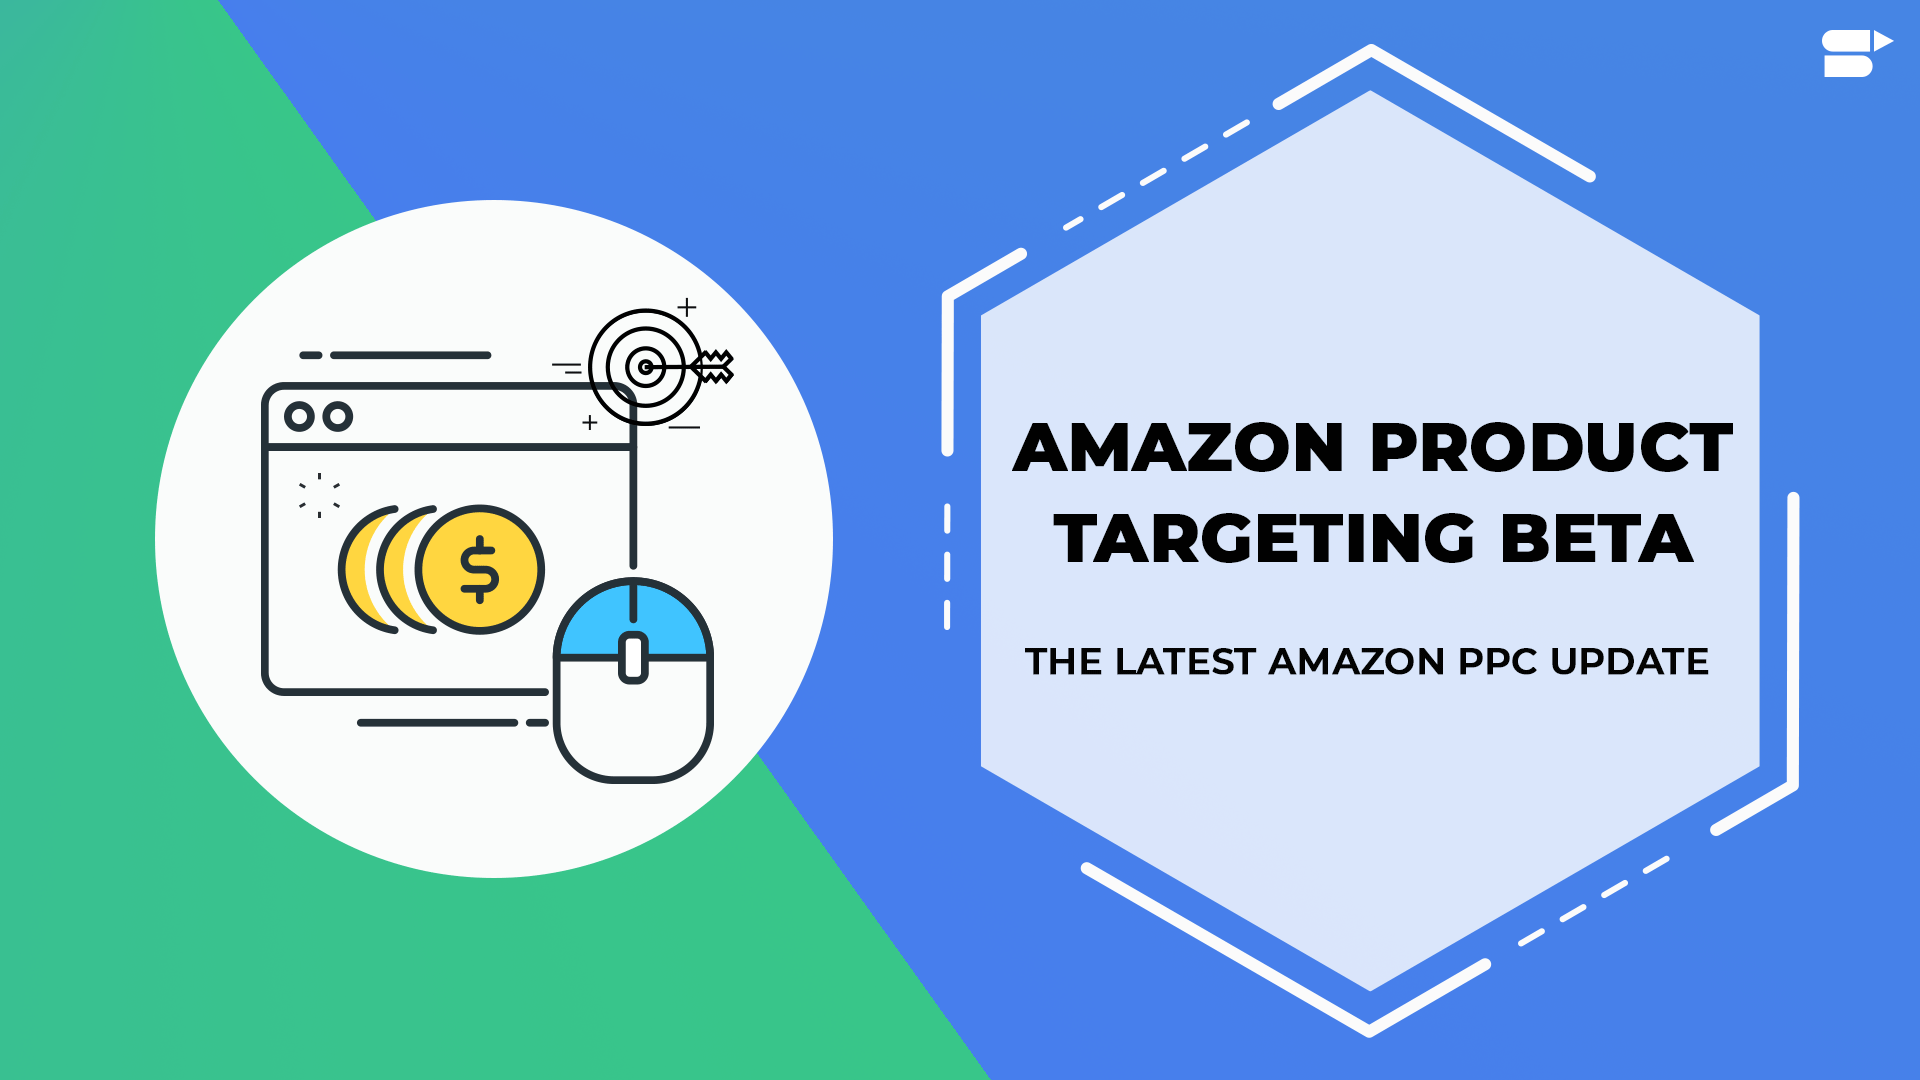 amazon product targeting beta